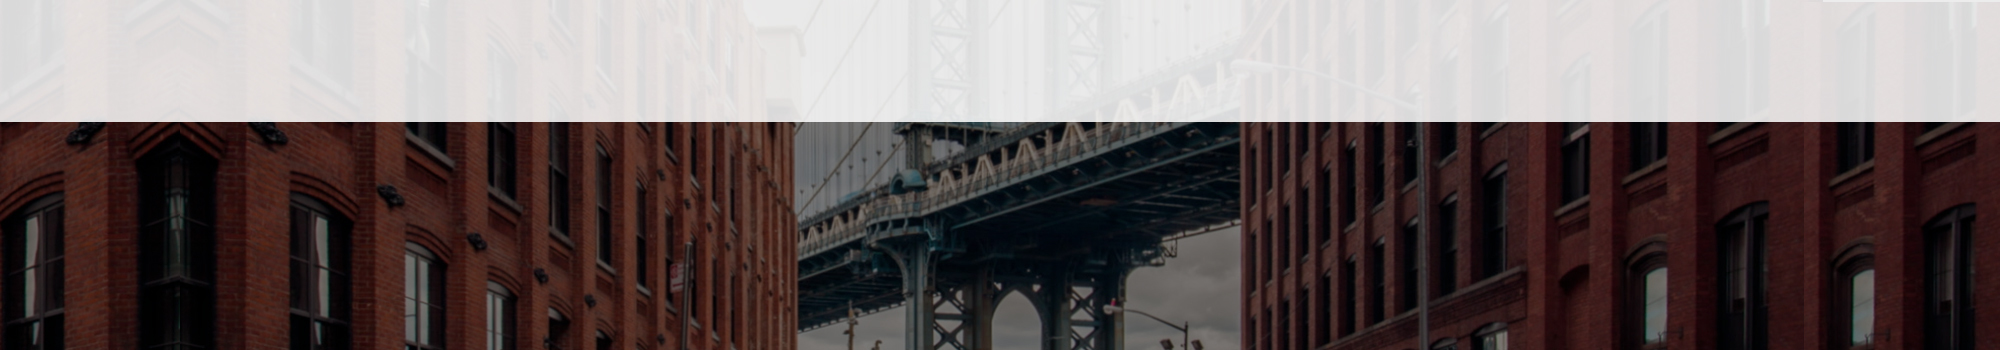 Get in touch with our specialist HR consultants in New York